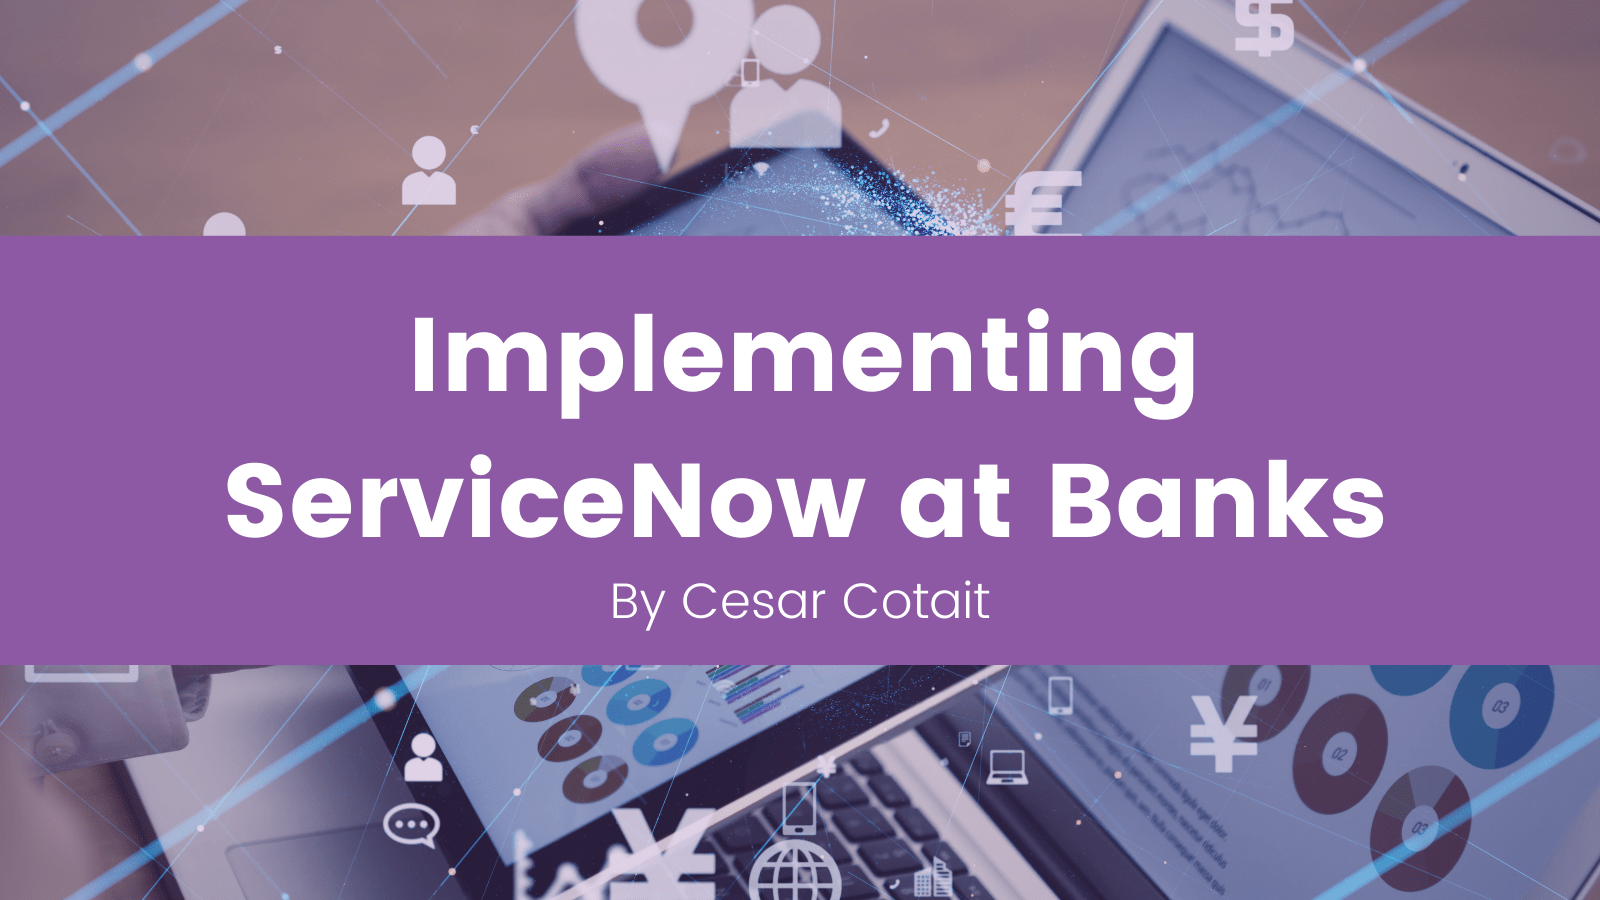 Implementing ServiceNow at Banks